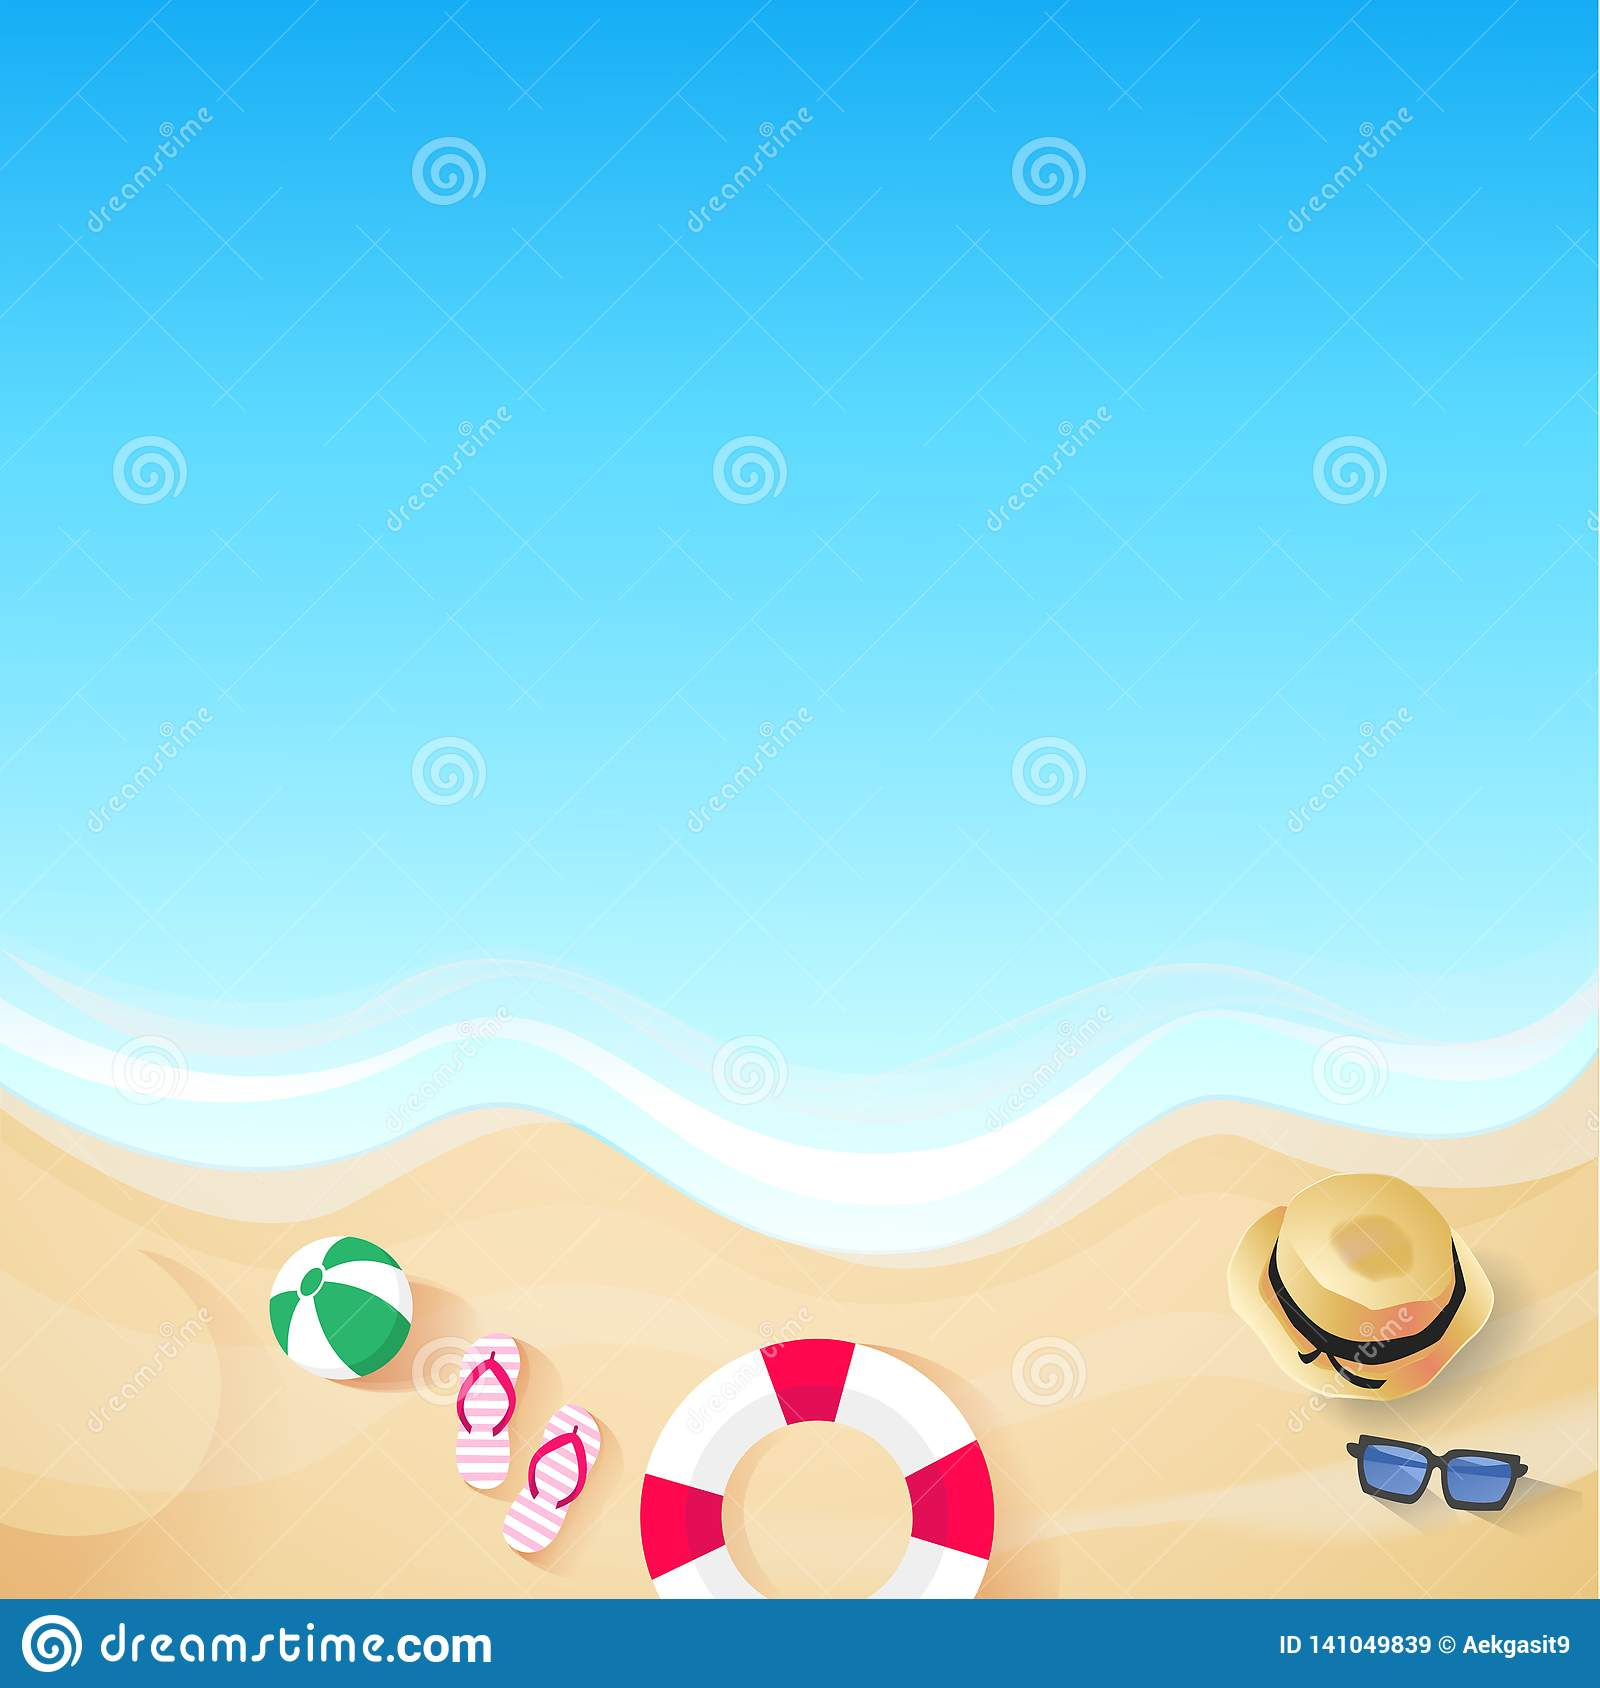 Travel this summer vacation with the sea and beautiful beaches.